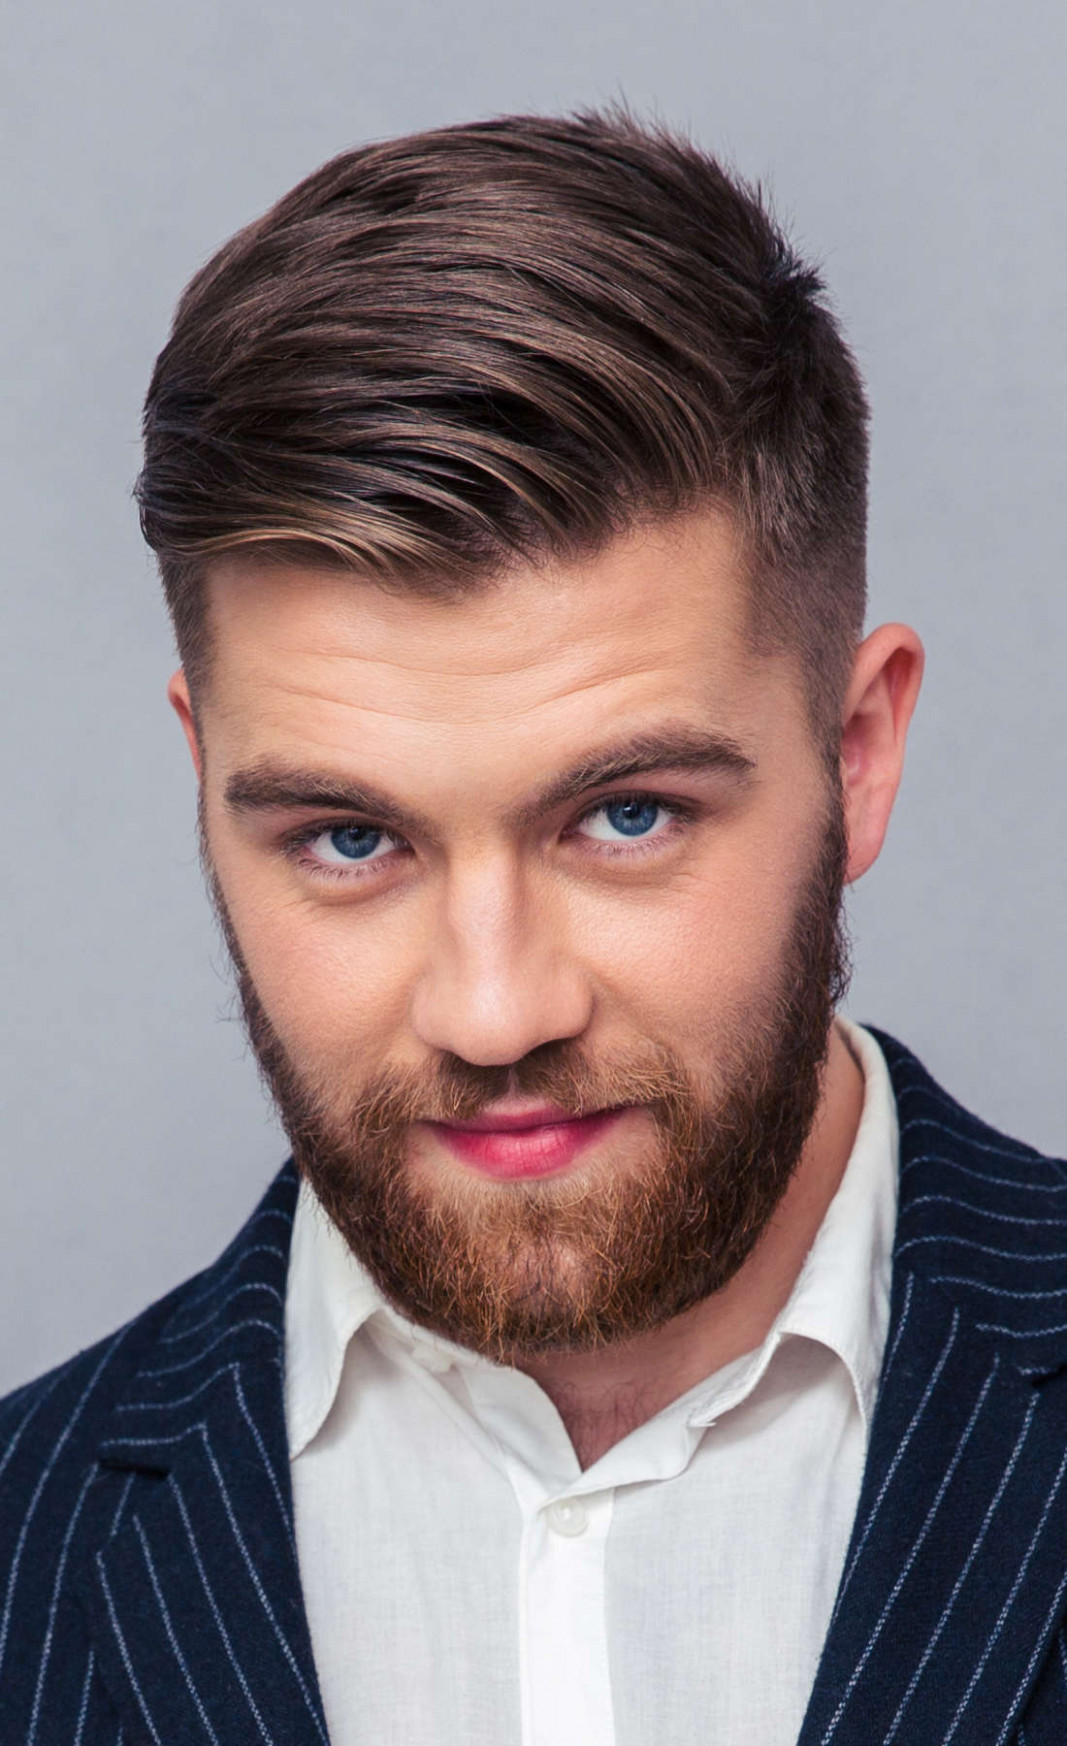 Top 8 Corporate Haircuts For Young Professionals: You need to